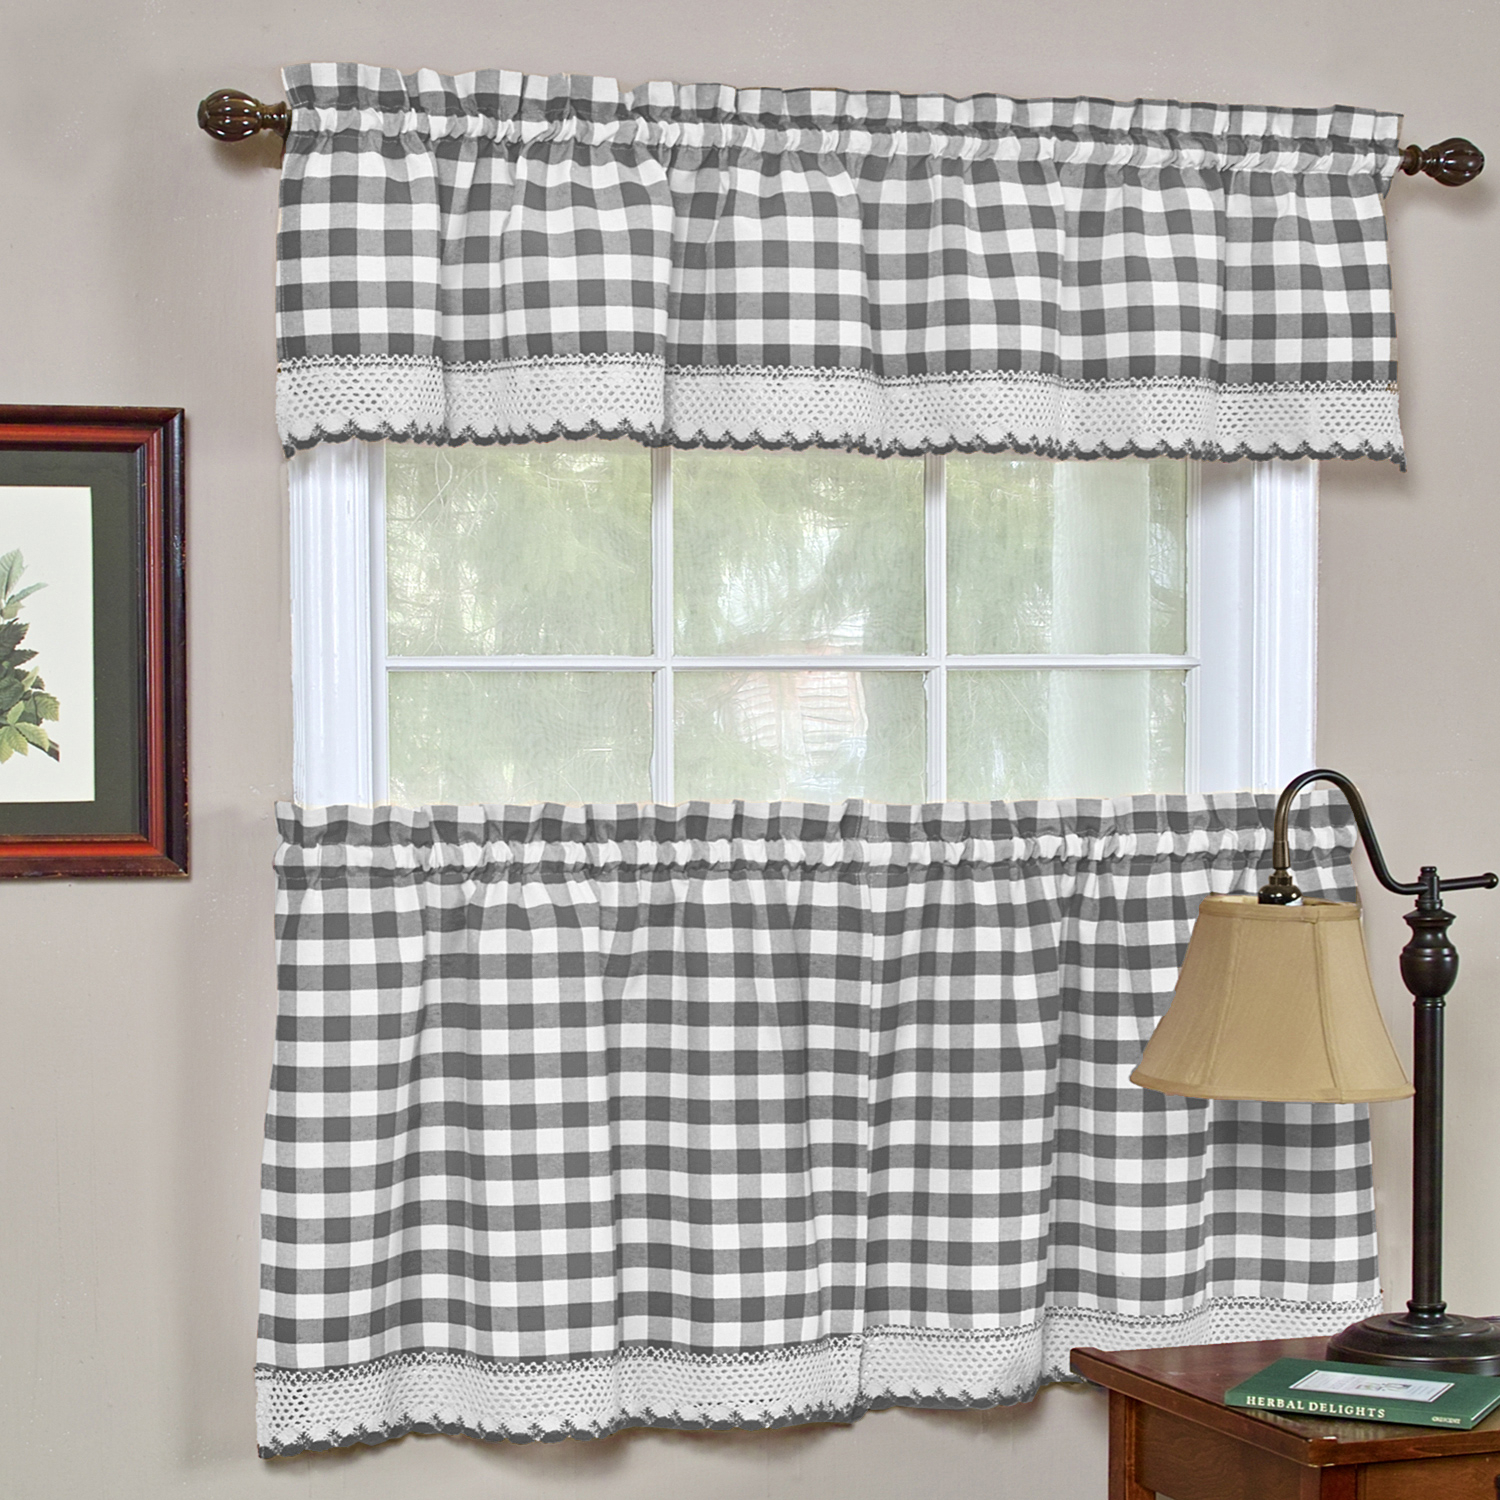 """Buffalo Check Gingham Kitchen Window Curtains 24"""" Tier & Valance Set Intended For Tree Branch Valance And Tiers Sets (View 8 of 20)"""